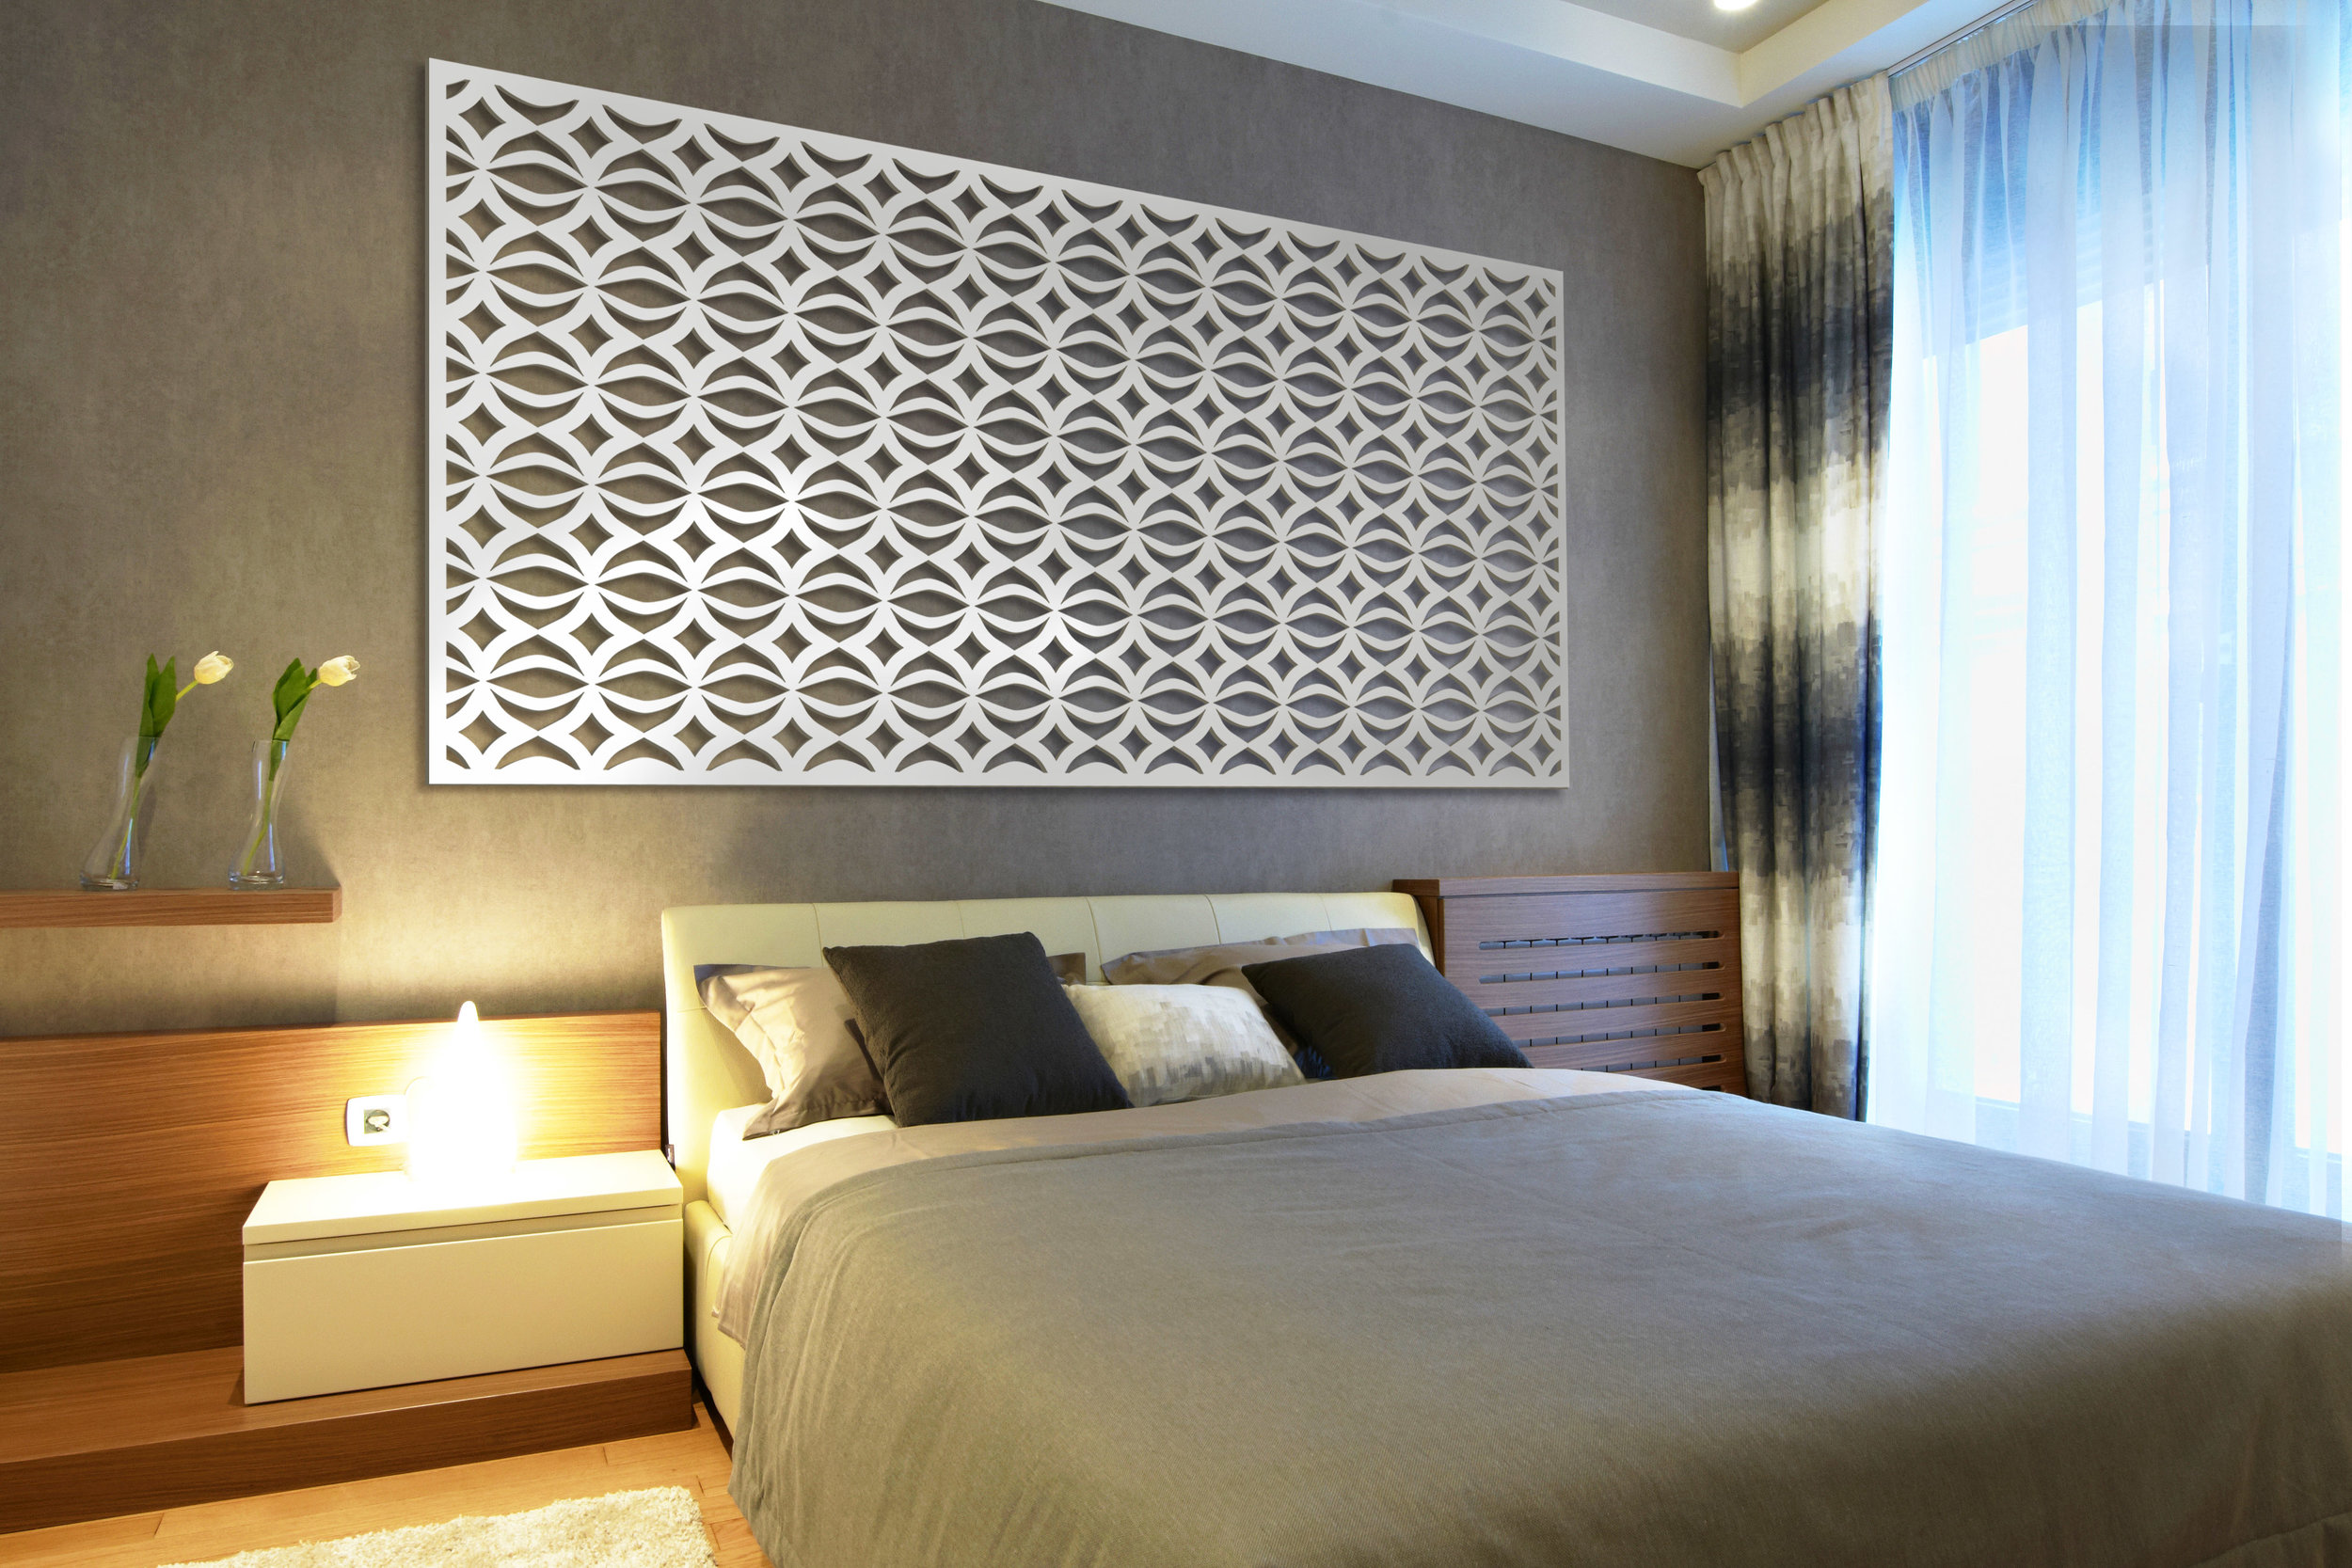 Installation Rendering C   Corcovado decorative hotel wall panel - painted